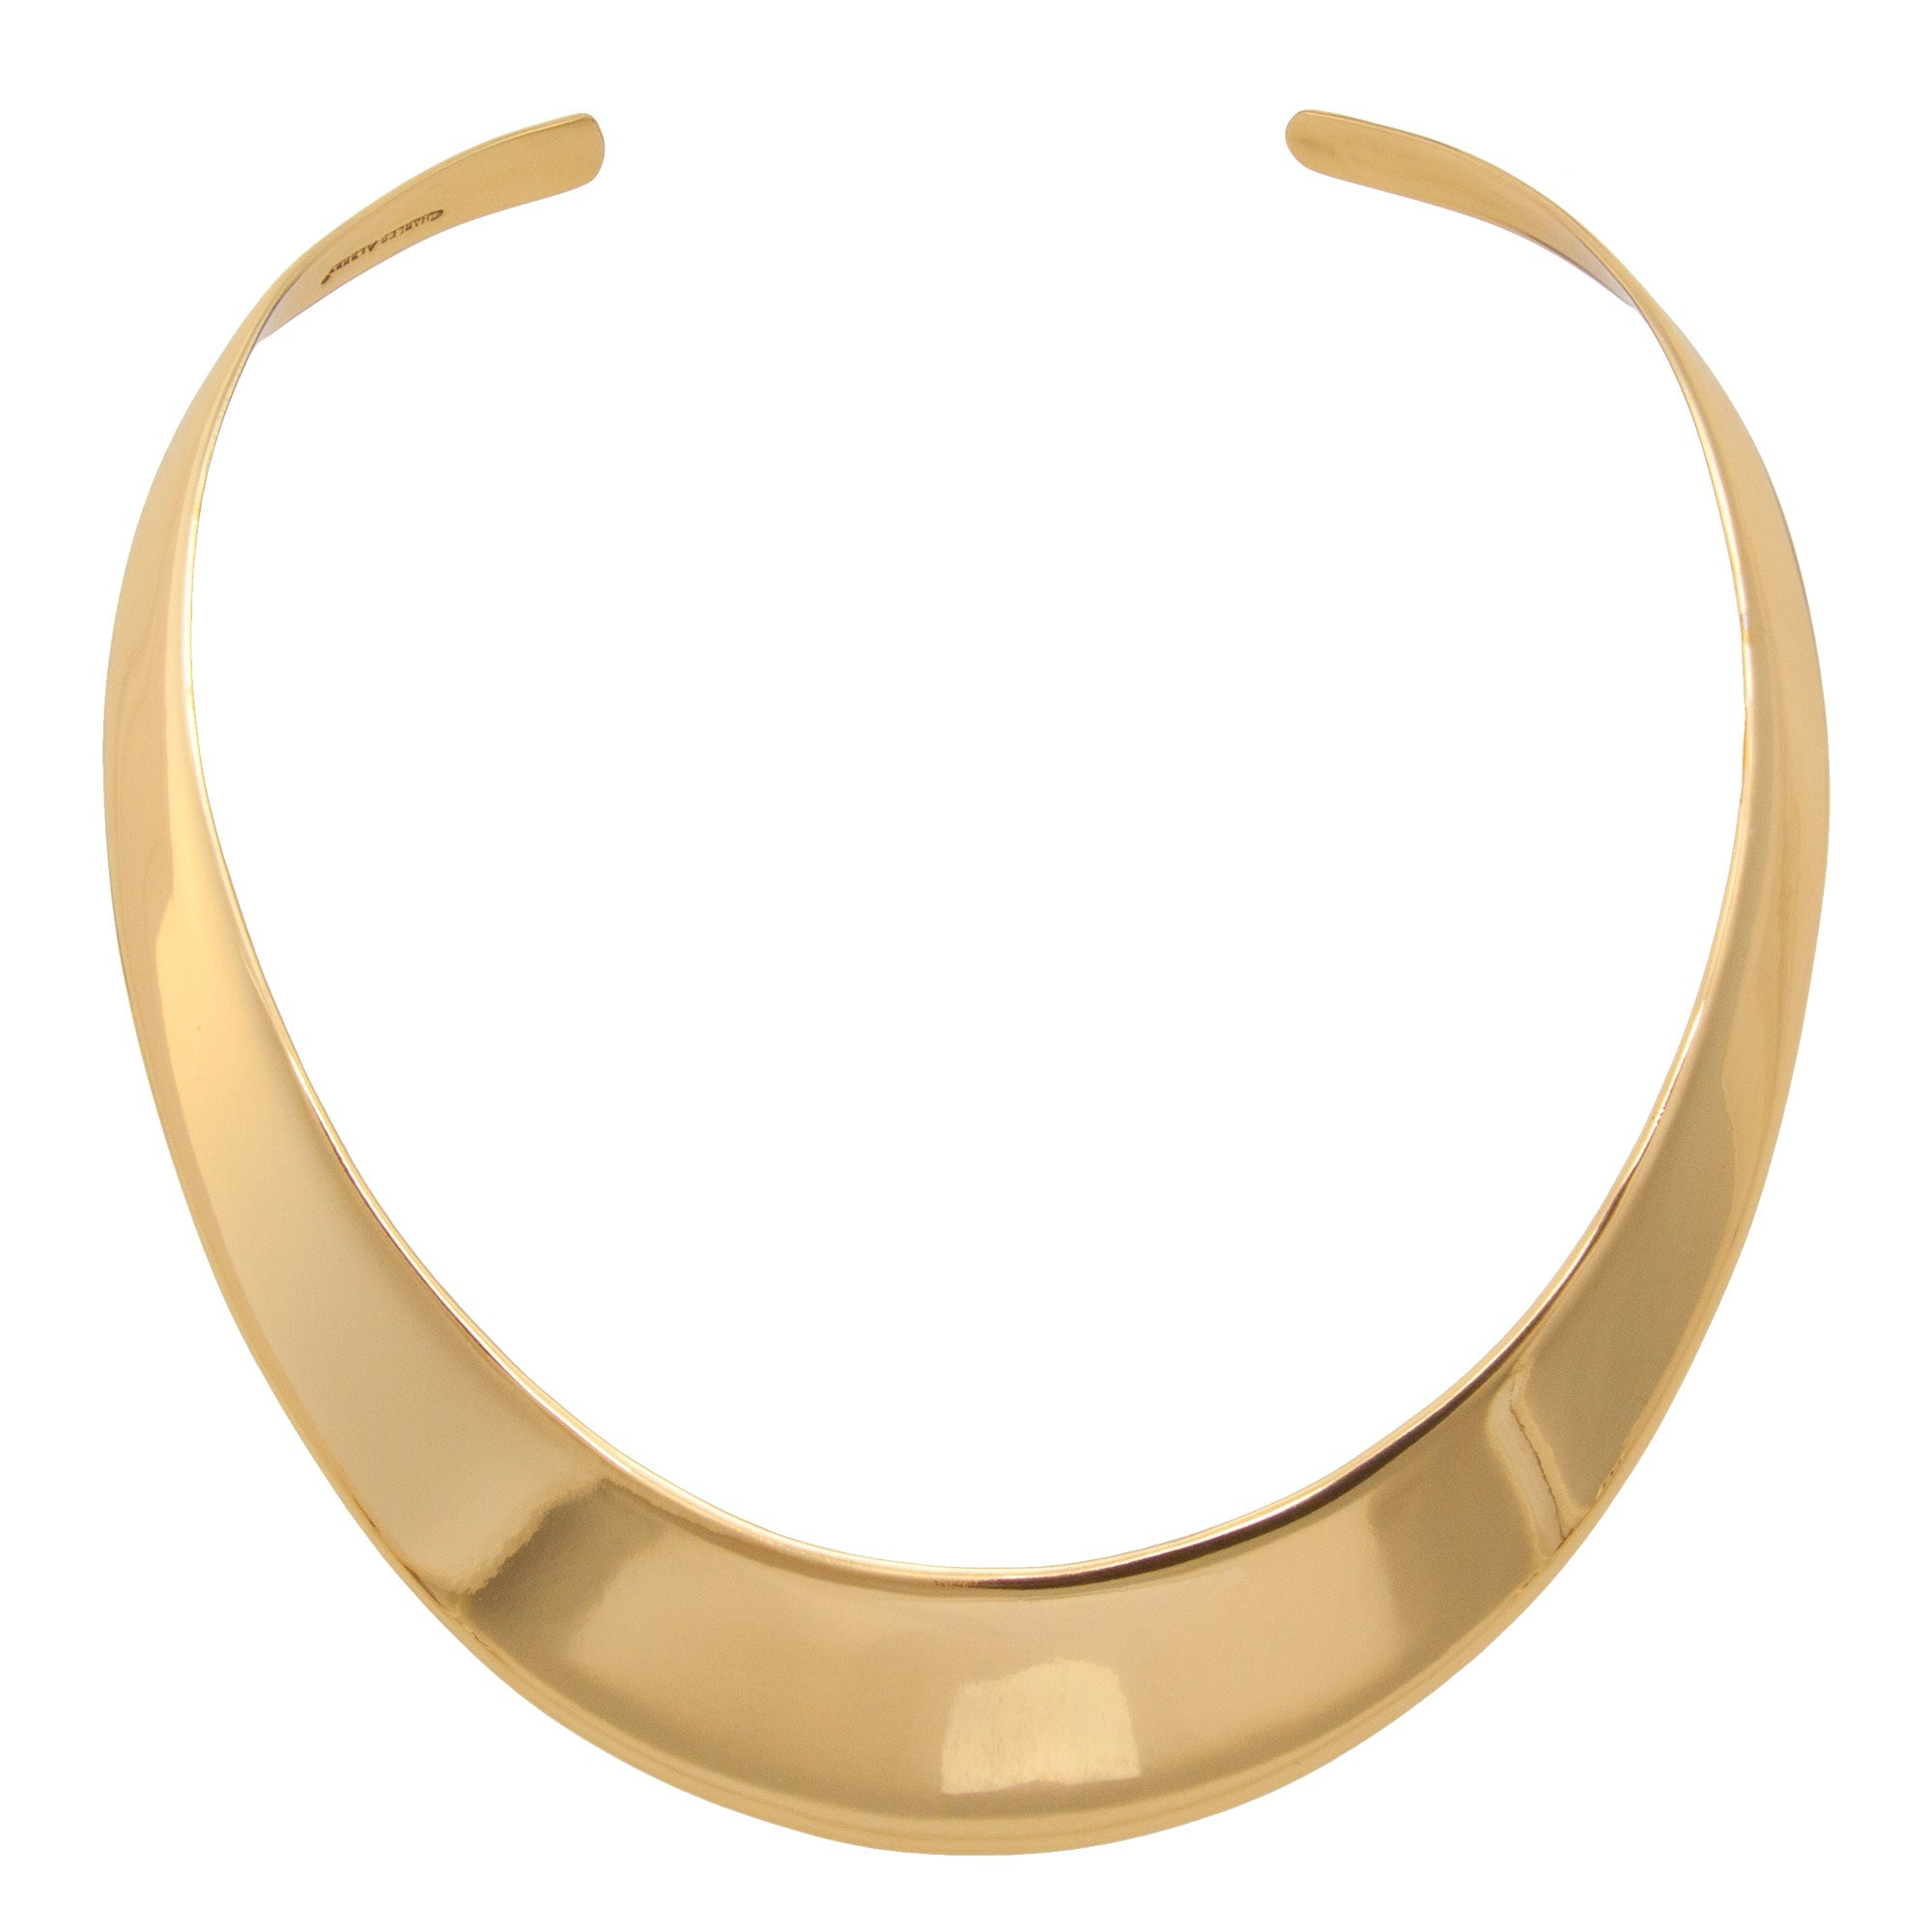 Alchemia Graduated Collar | Charles Albert Jewelry